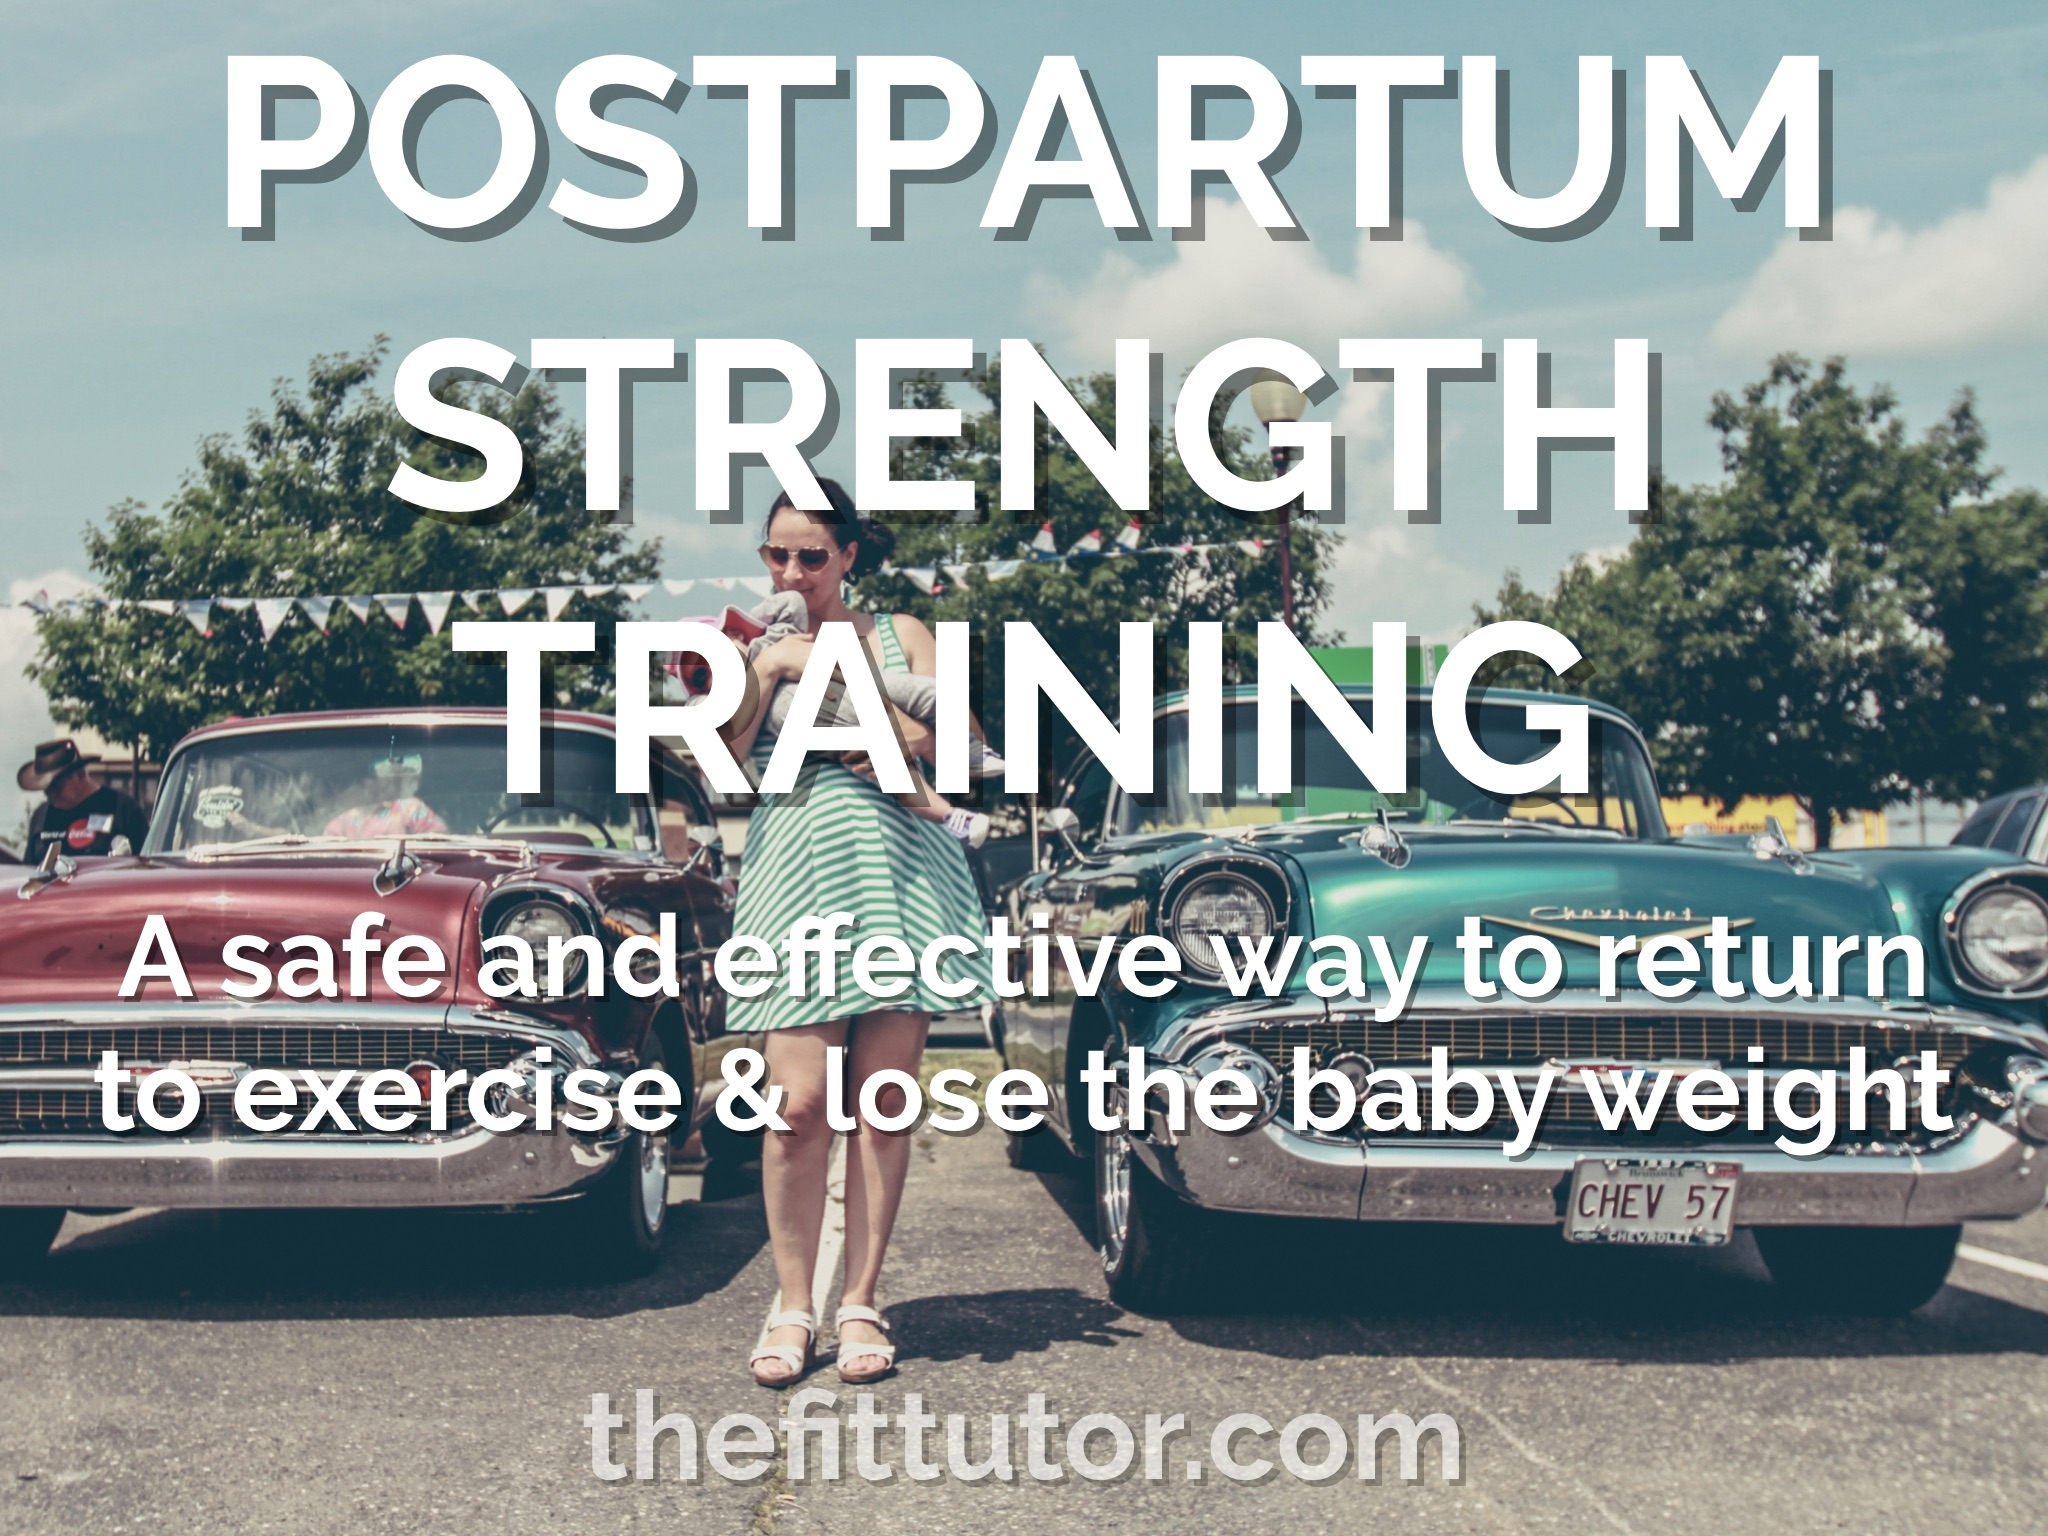 postpartum strength training - get back in shape with this healthy and effective program